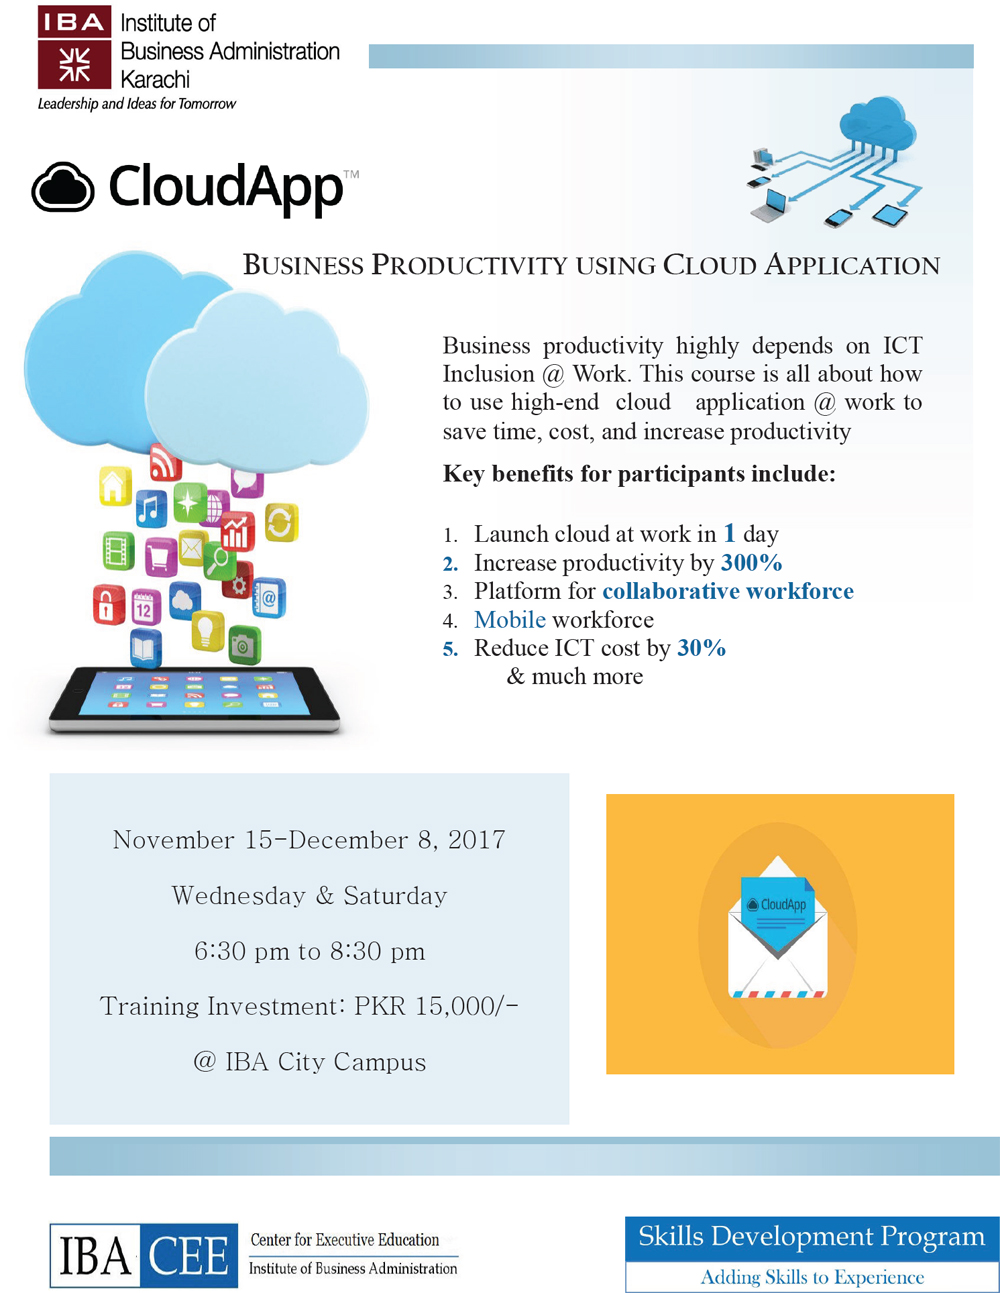 Business Productivity using Cloud Application